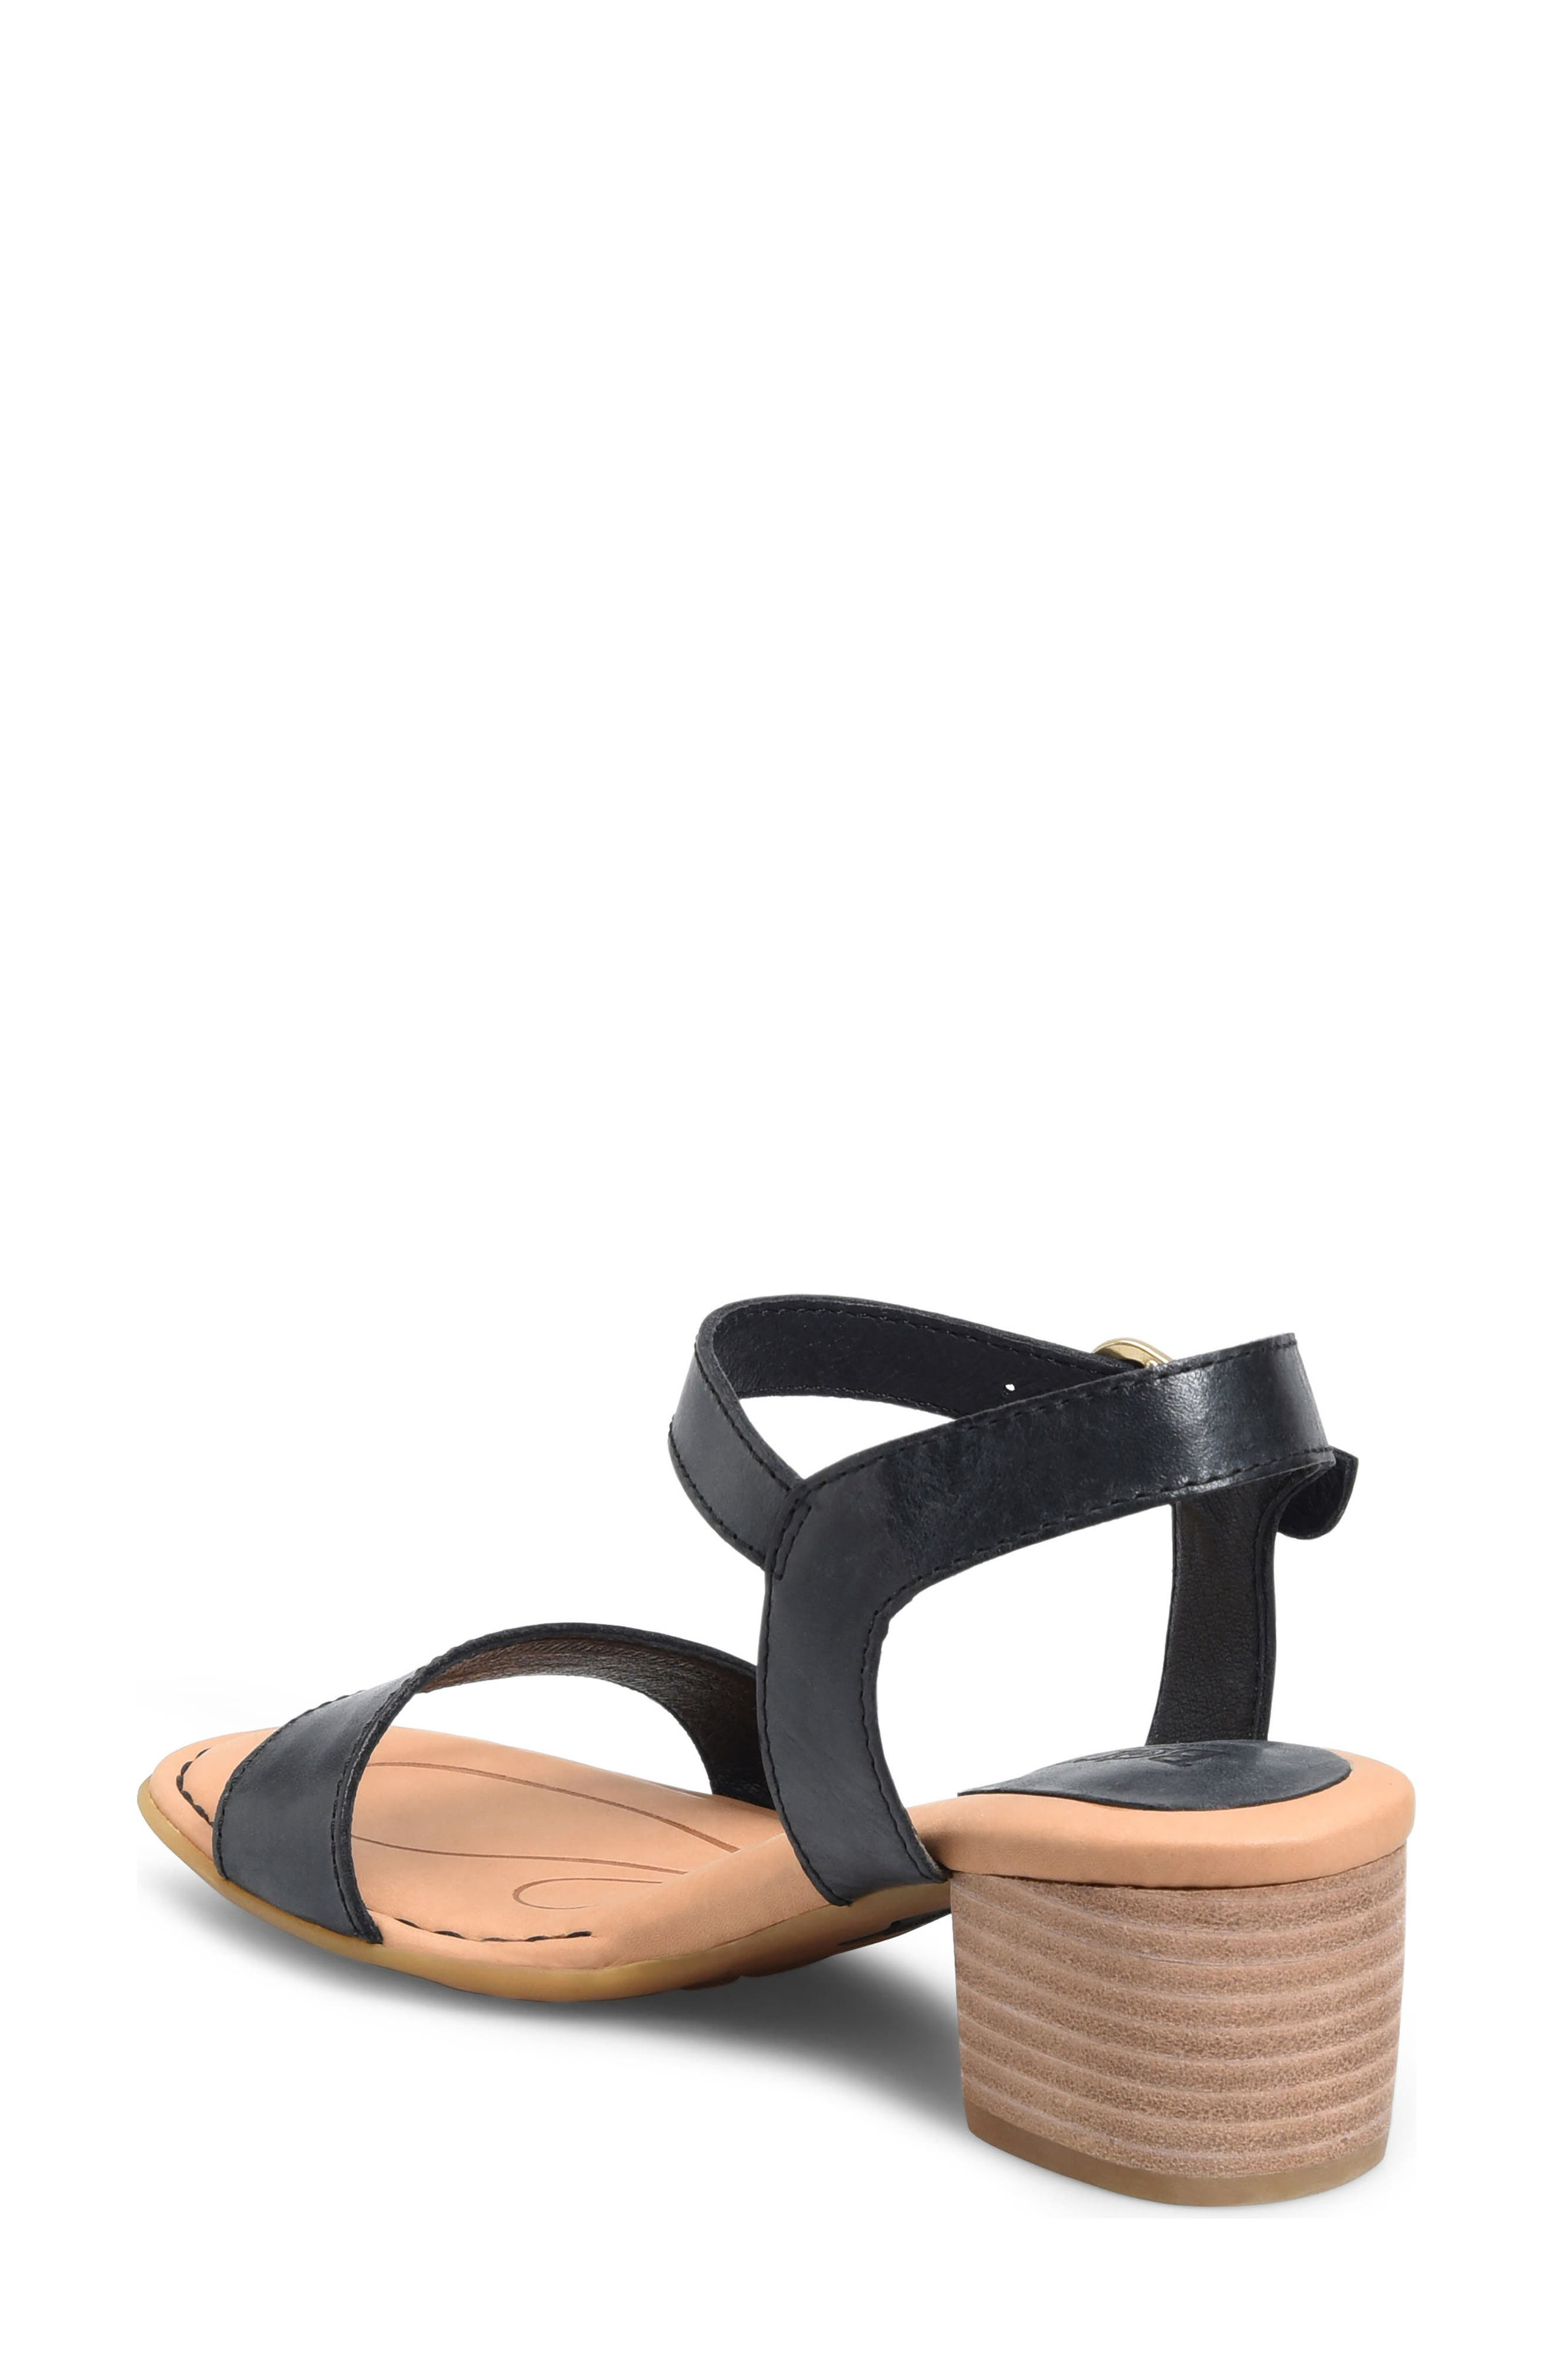 Medan Sandal,                             Alternate thumbnail 2, color,                             001